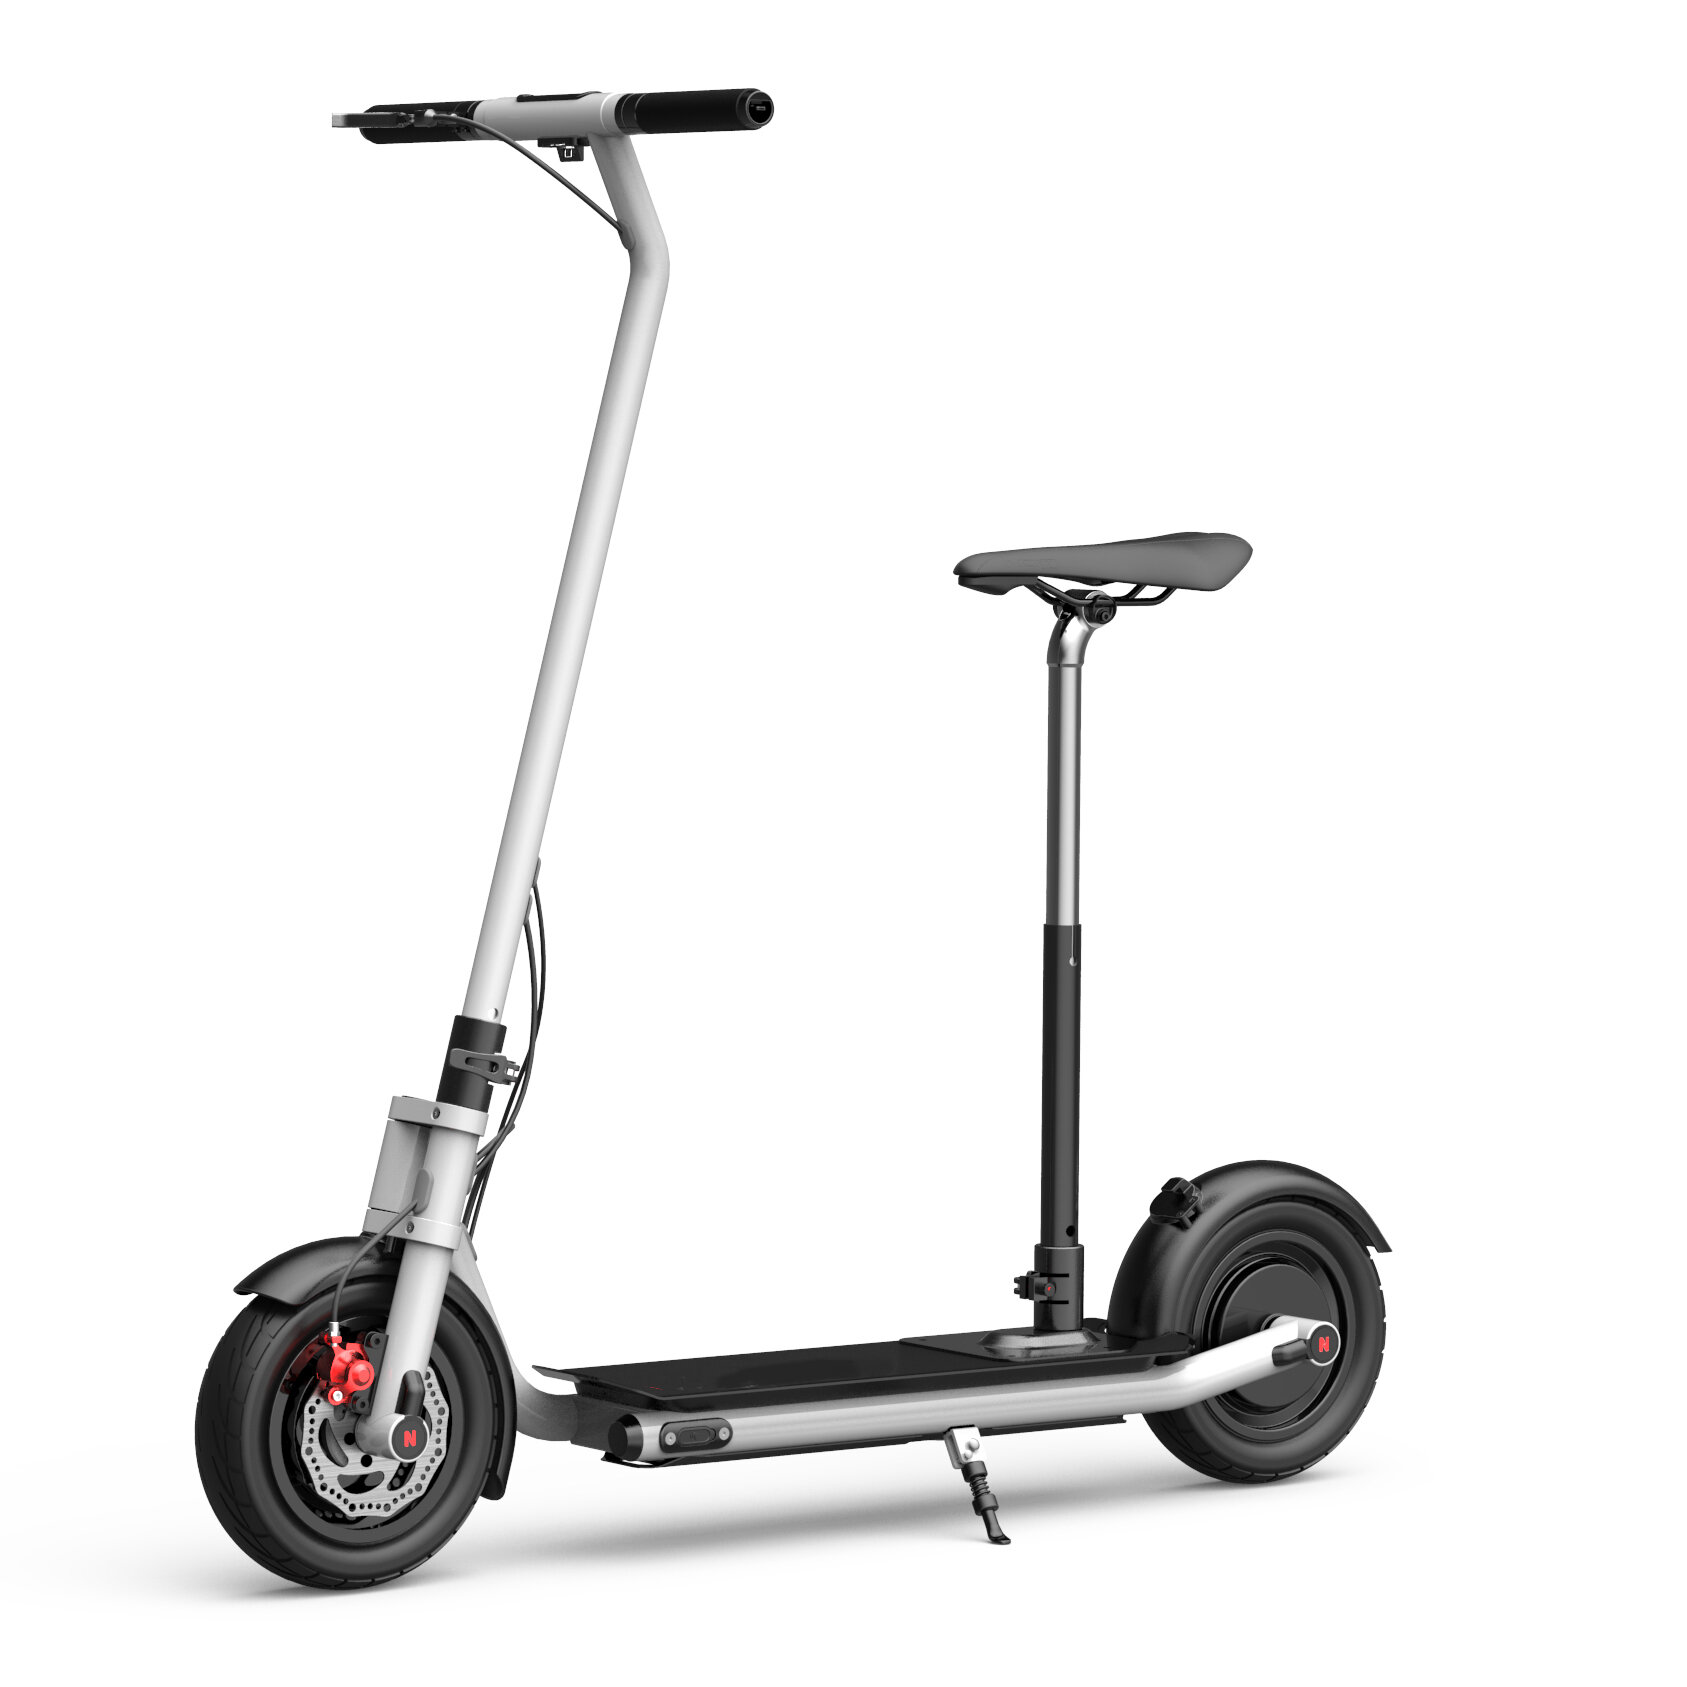 NEXTDRIVE N-7 300W 36V 10.4Ah Foldable Electric Scooter With Saddle For Adults/Kids 32 Km/h Max Speed 18-36 Km Mileage